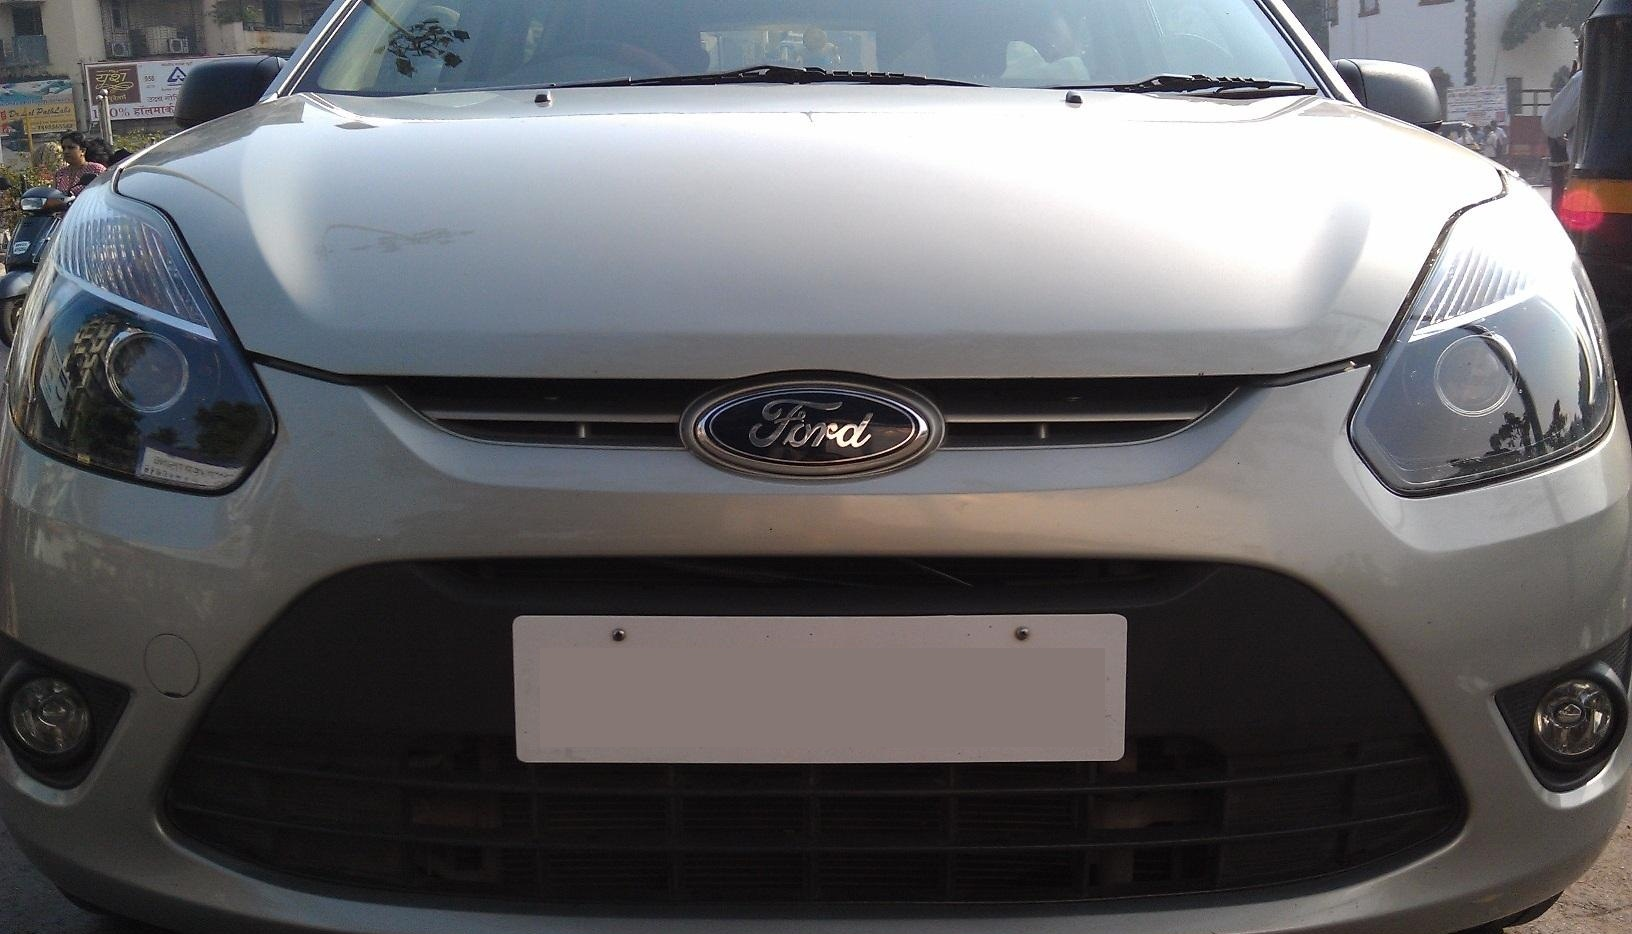 Ford Figo Custom Headlights Type 1 Hybrid Customs 9988229191